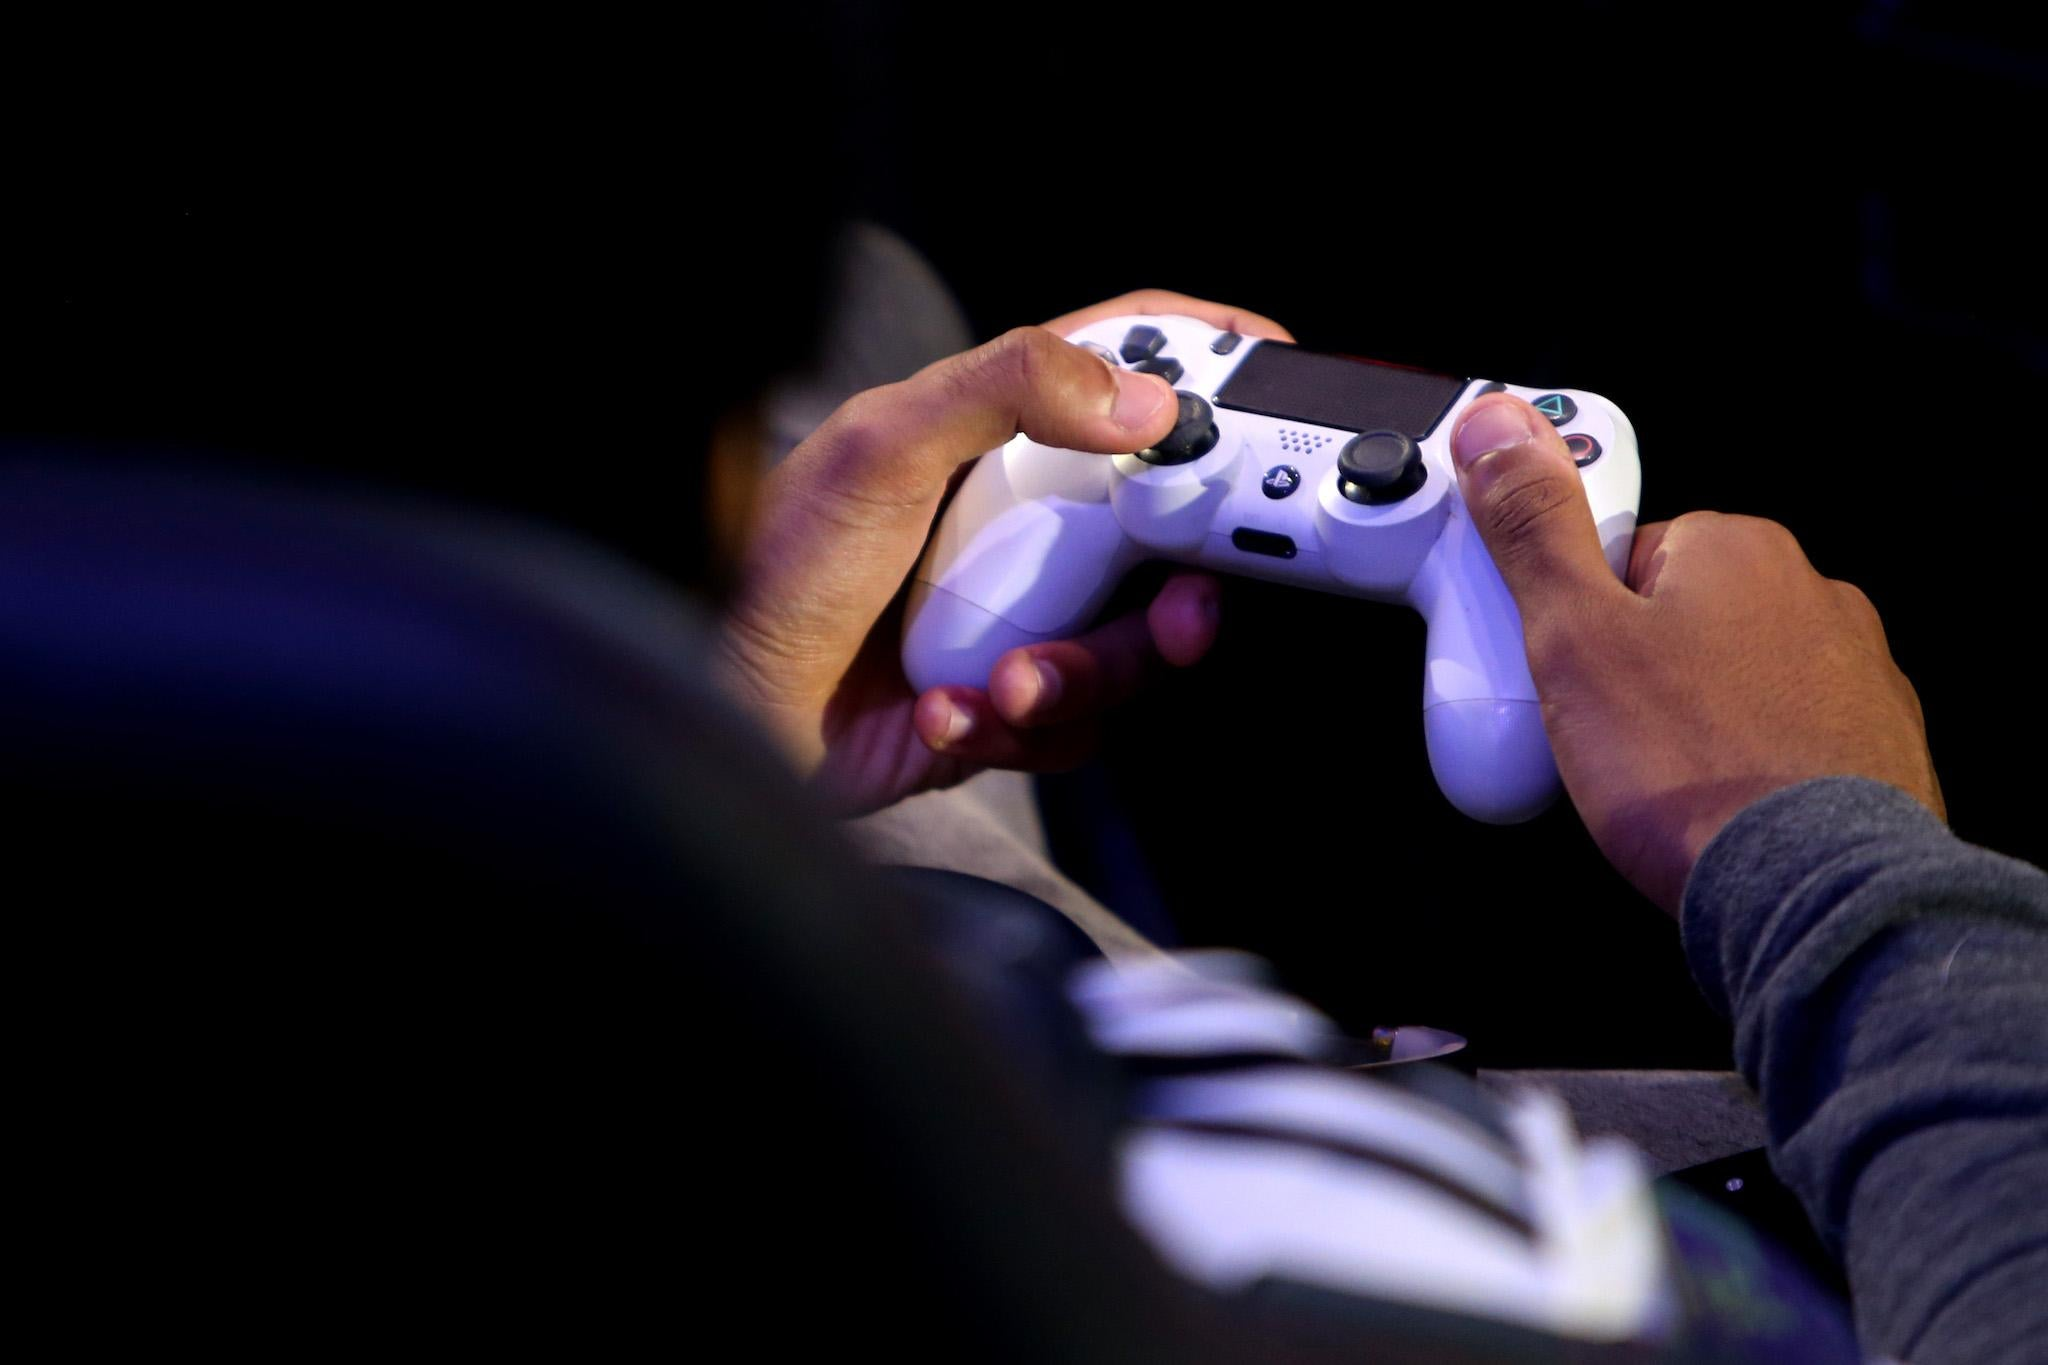 Playstation - latest news, breaking stories and comment - The